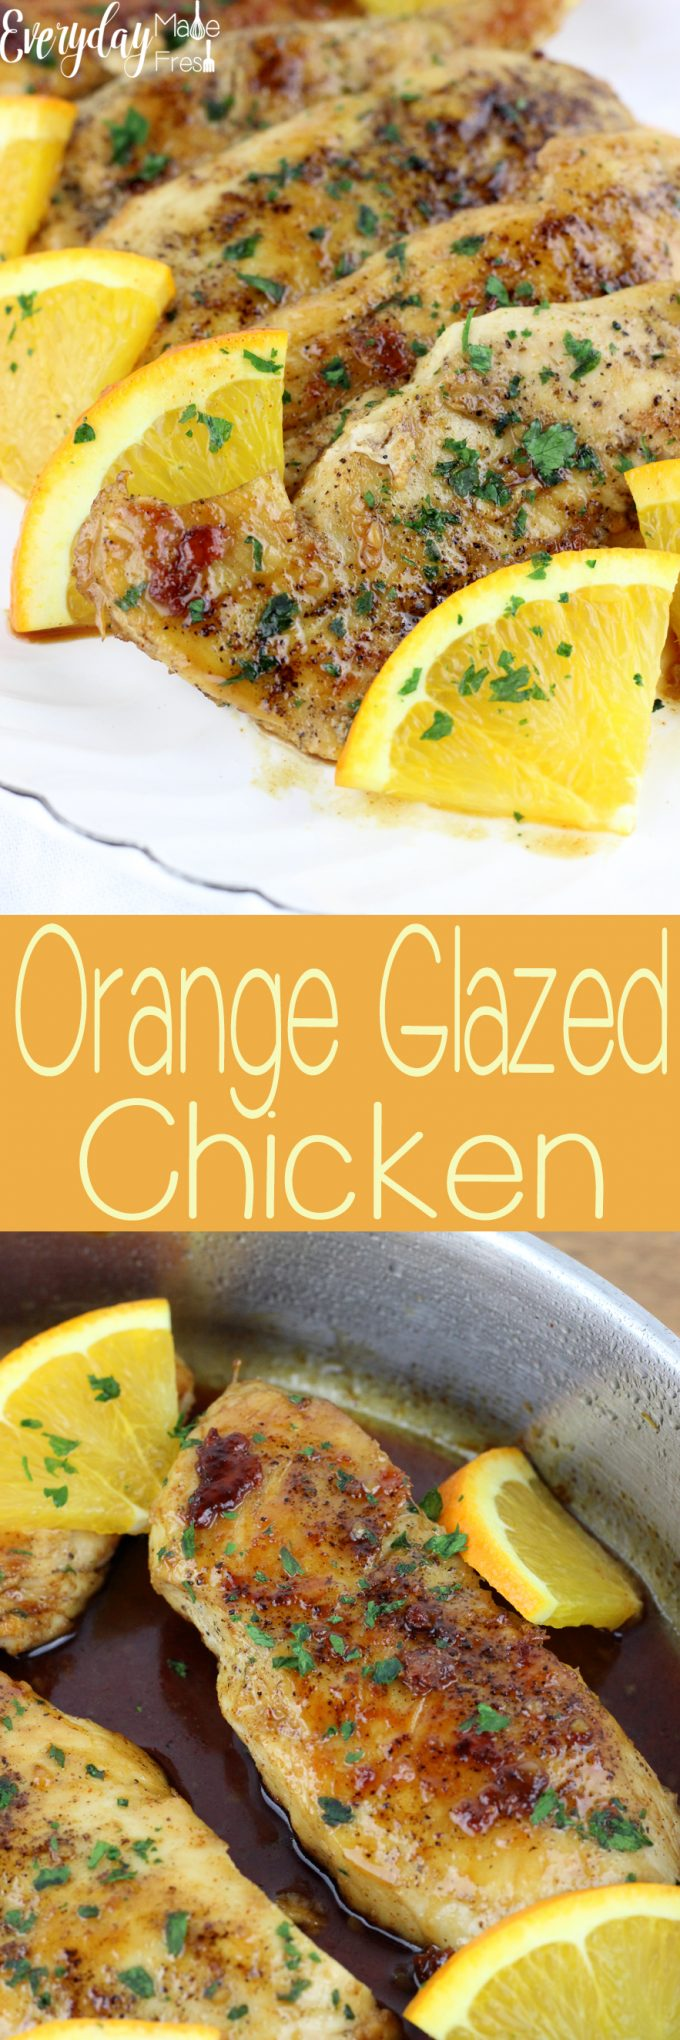 Sweet, spicy, and sticky this Orange Glazed Chicken is the perfect family meal. | EverydayMadeFresh.com